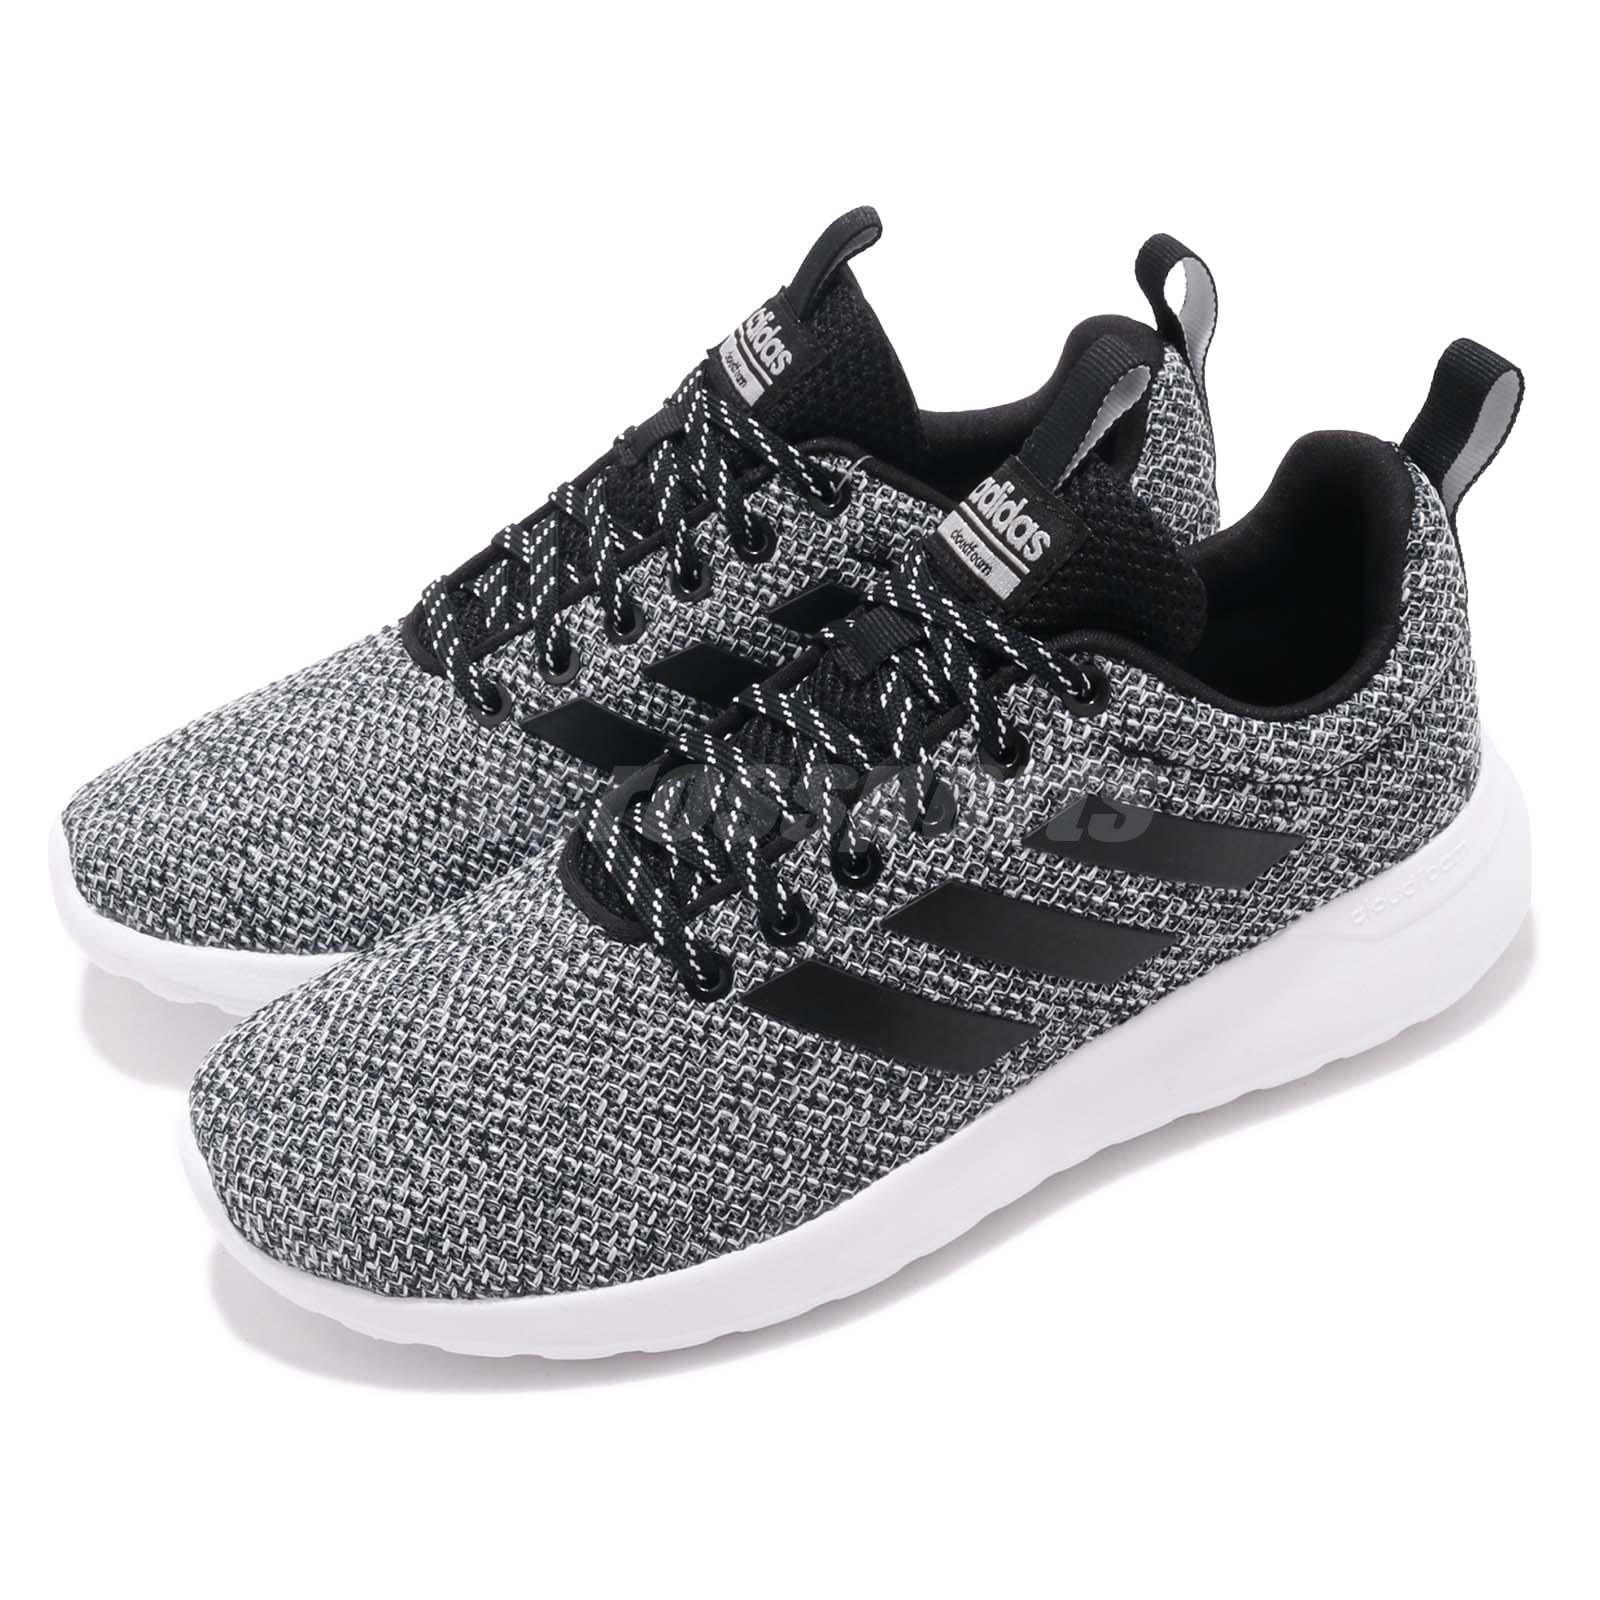 6417e95cbbf Details about adidas Lite Racer CLN Black White Women Running Casual Shoes  Sneakers F34594